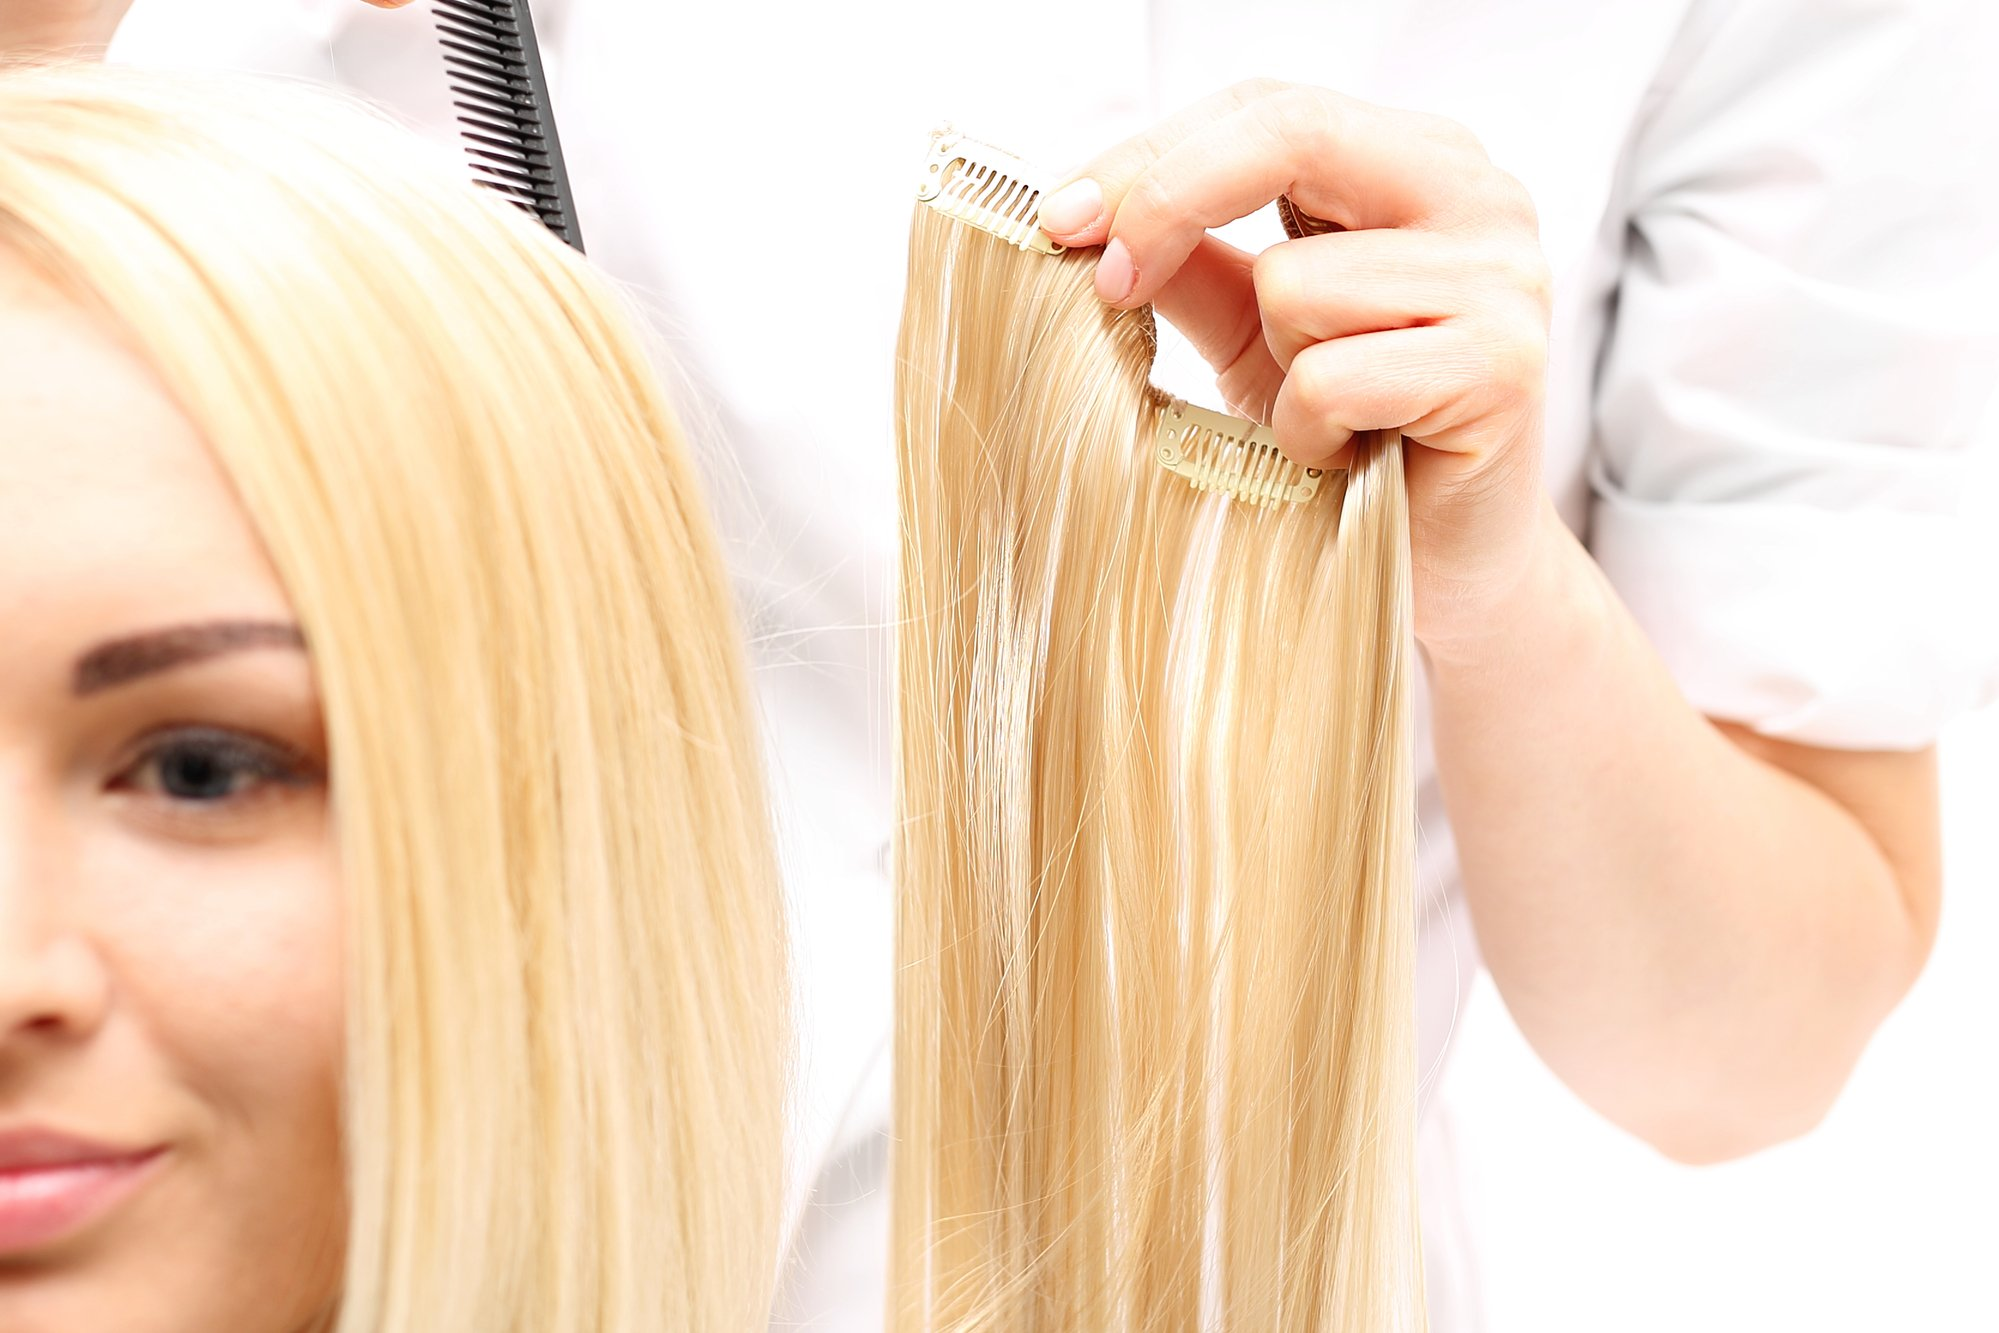 How to Take Care of Your Human Hair Extensions at Home